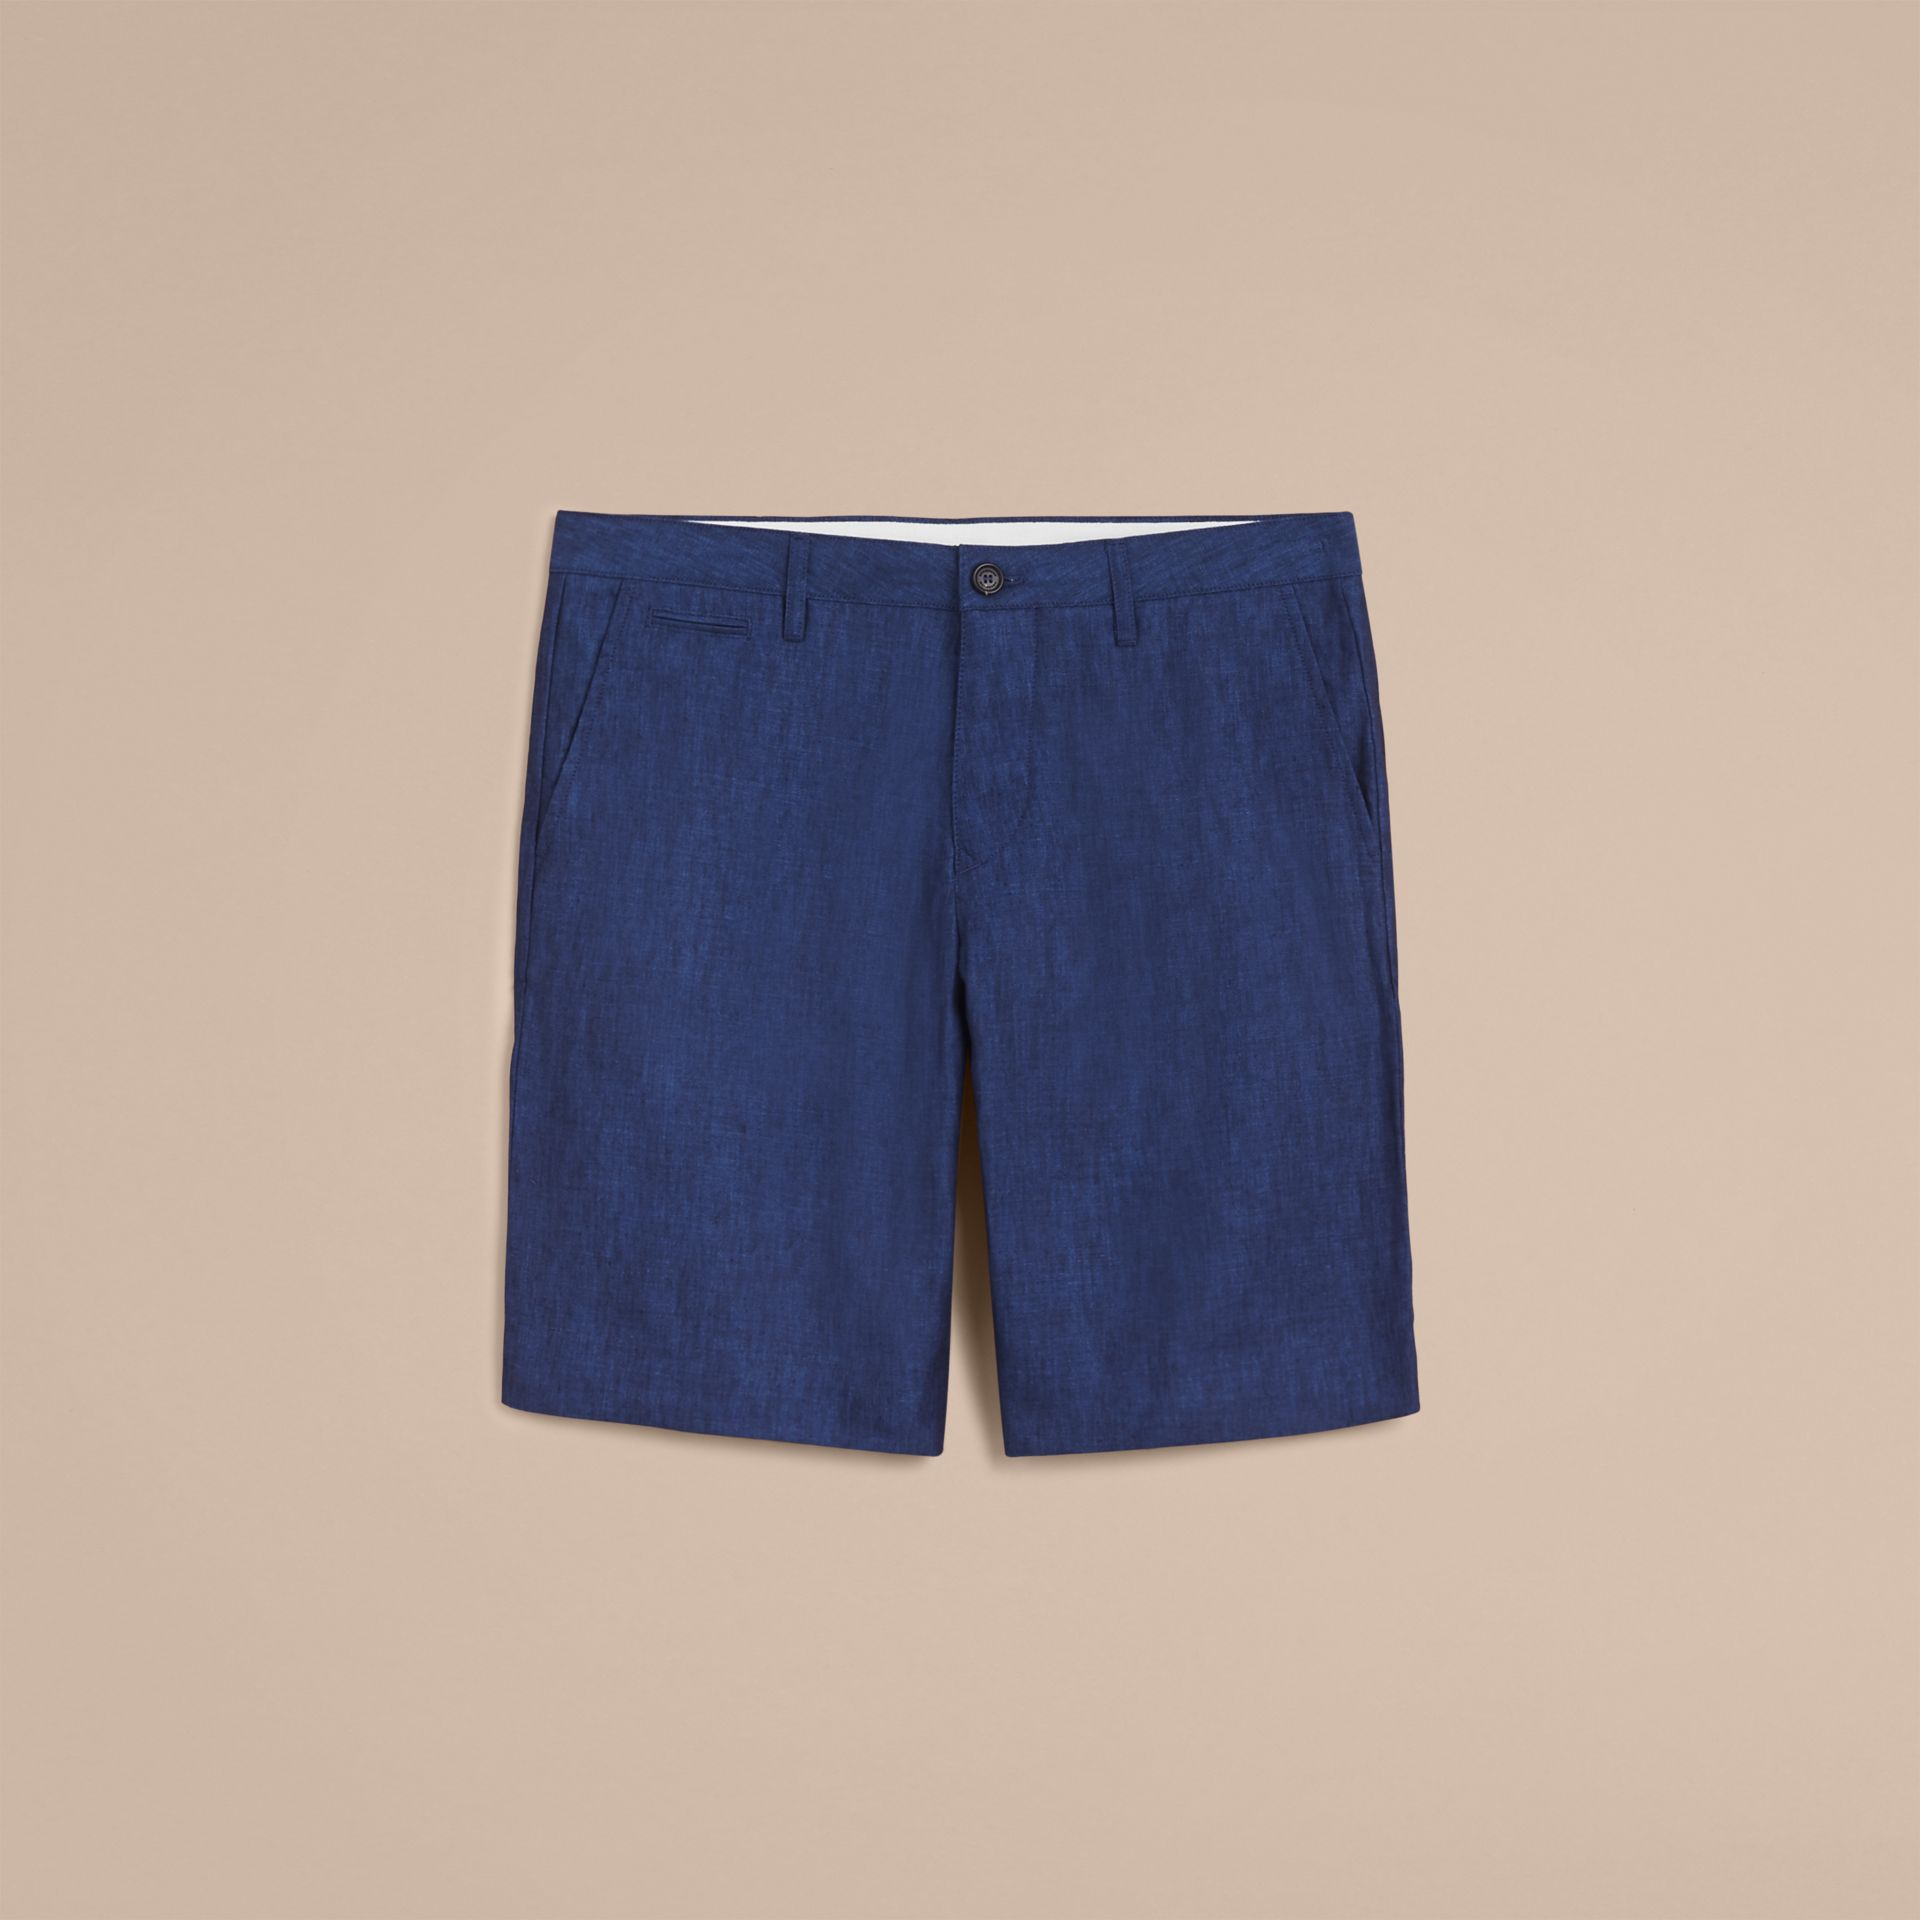 Lightweight Linen Shorts in Steel Blue - Men | Burberry Canada - gallery image 3